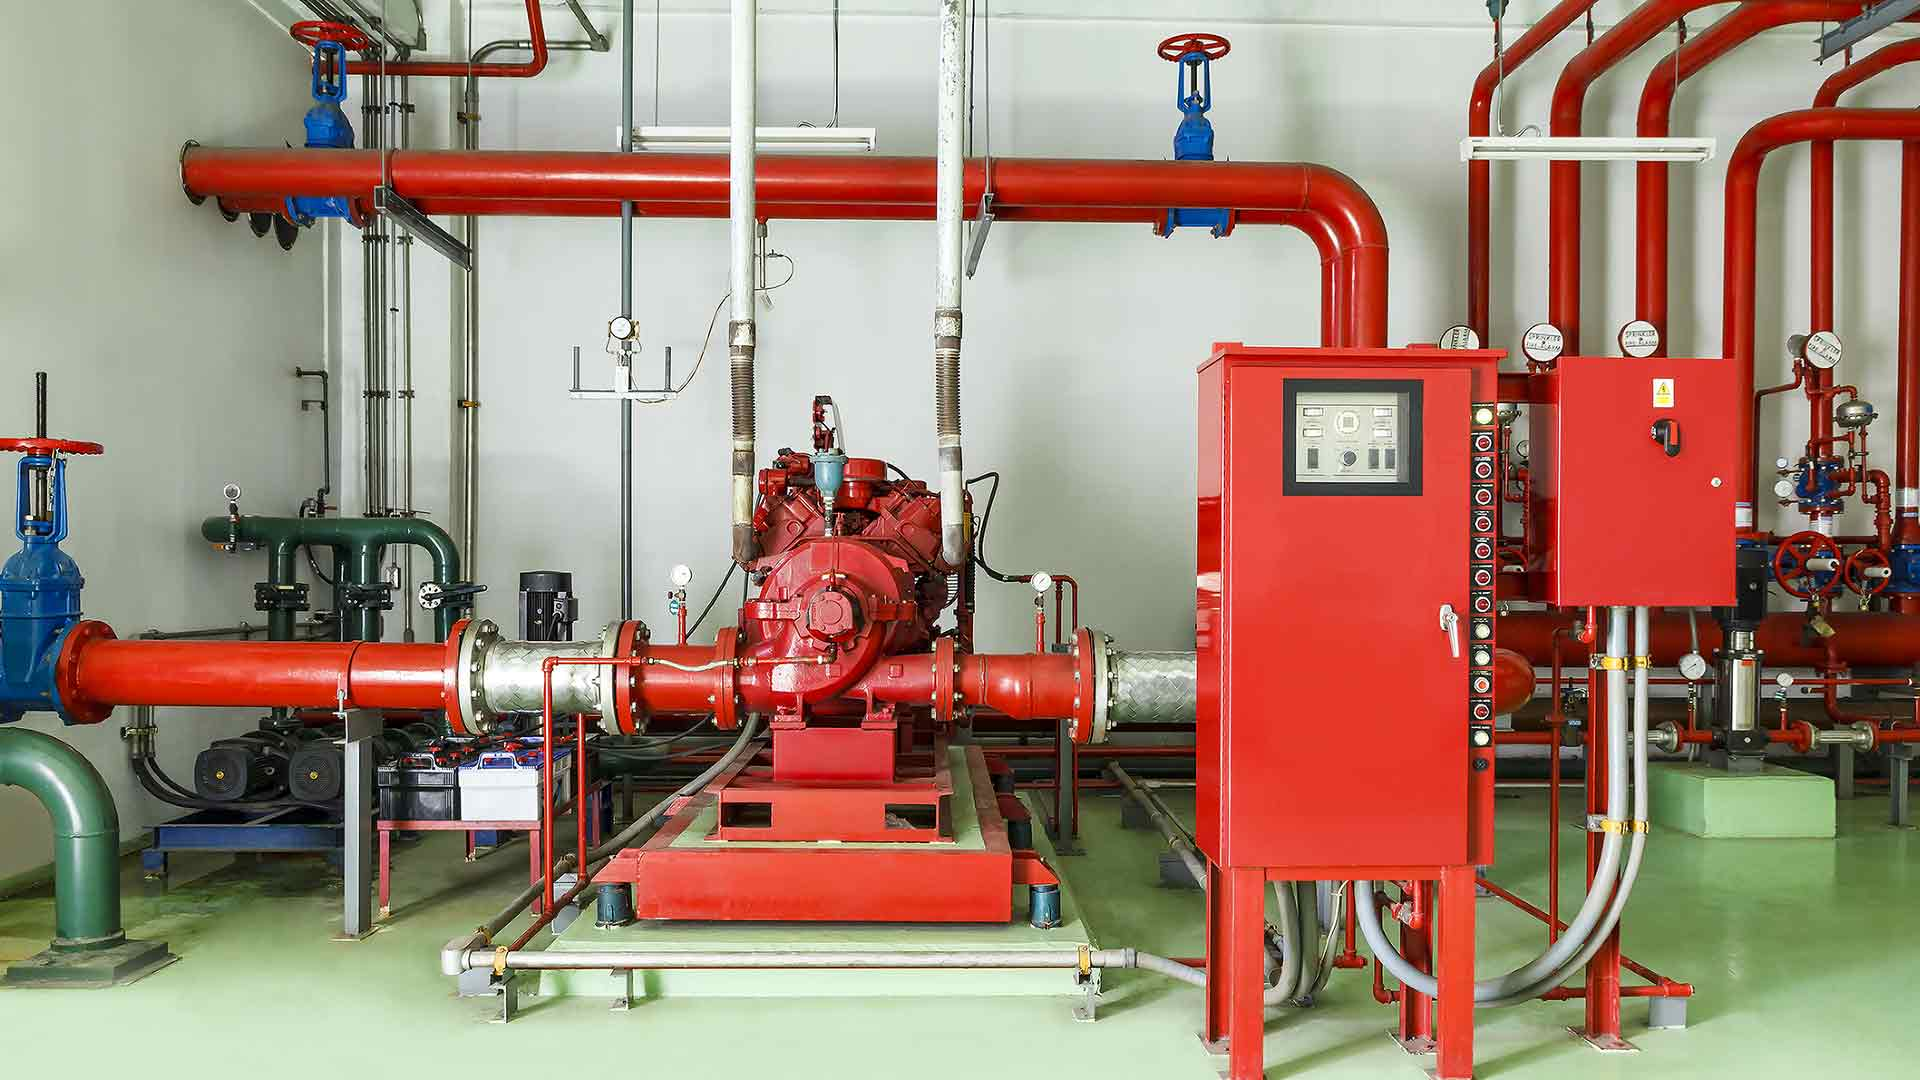 Global Fire Pump Market Growth Projection to 2026